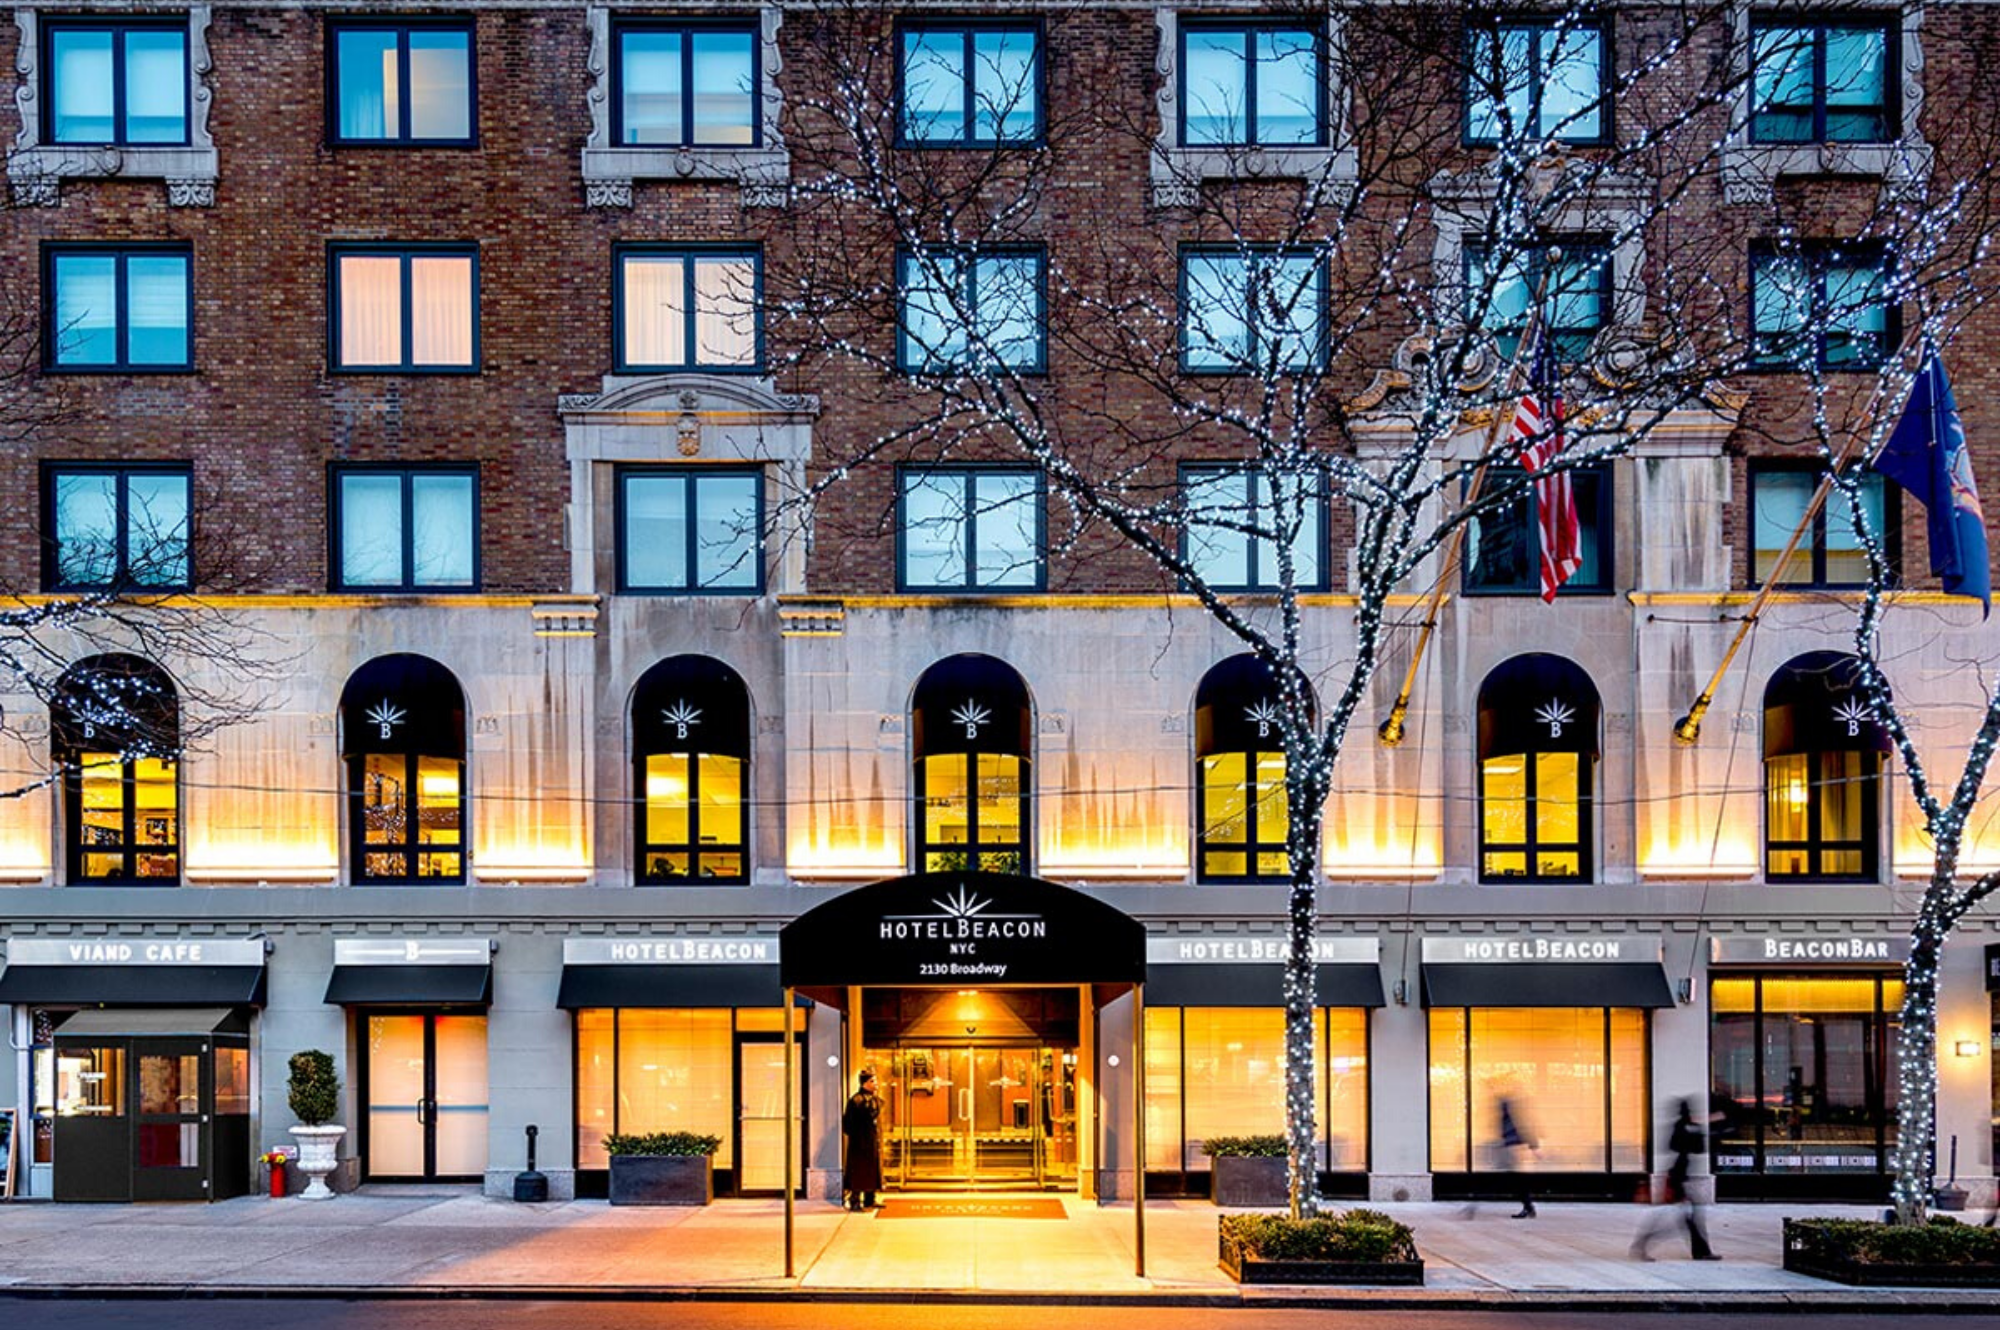 Saucepan Kids review Hotel Beacon New York - Family-friendly hotel accommodation in New York NYC